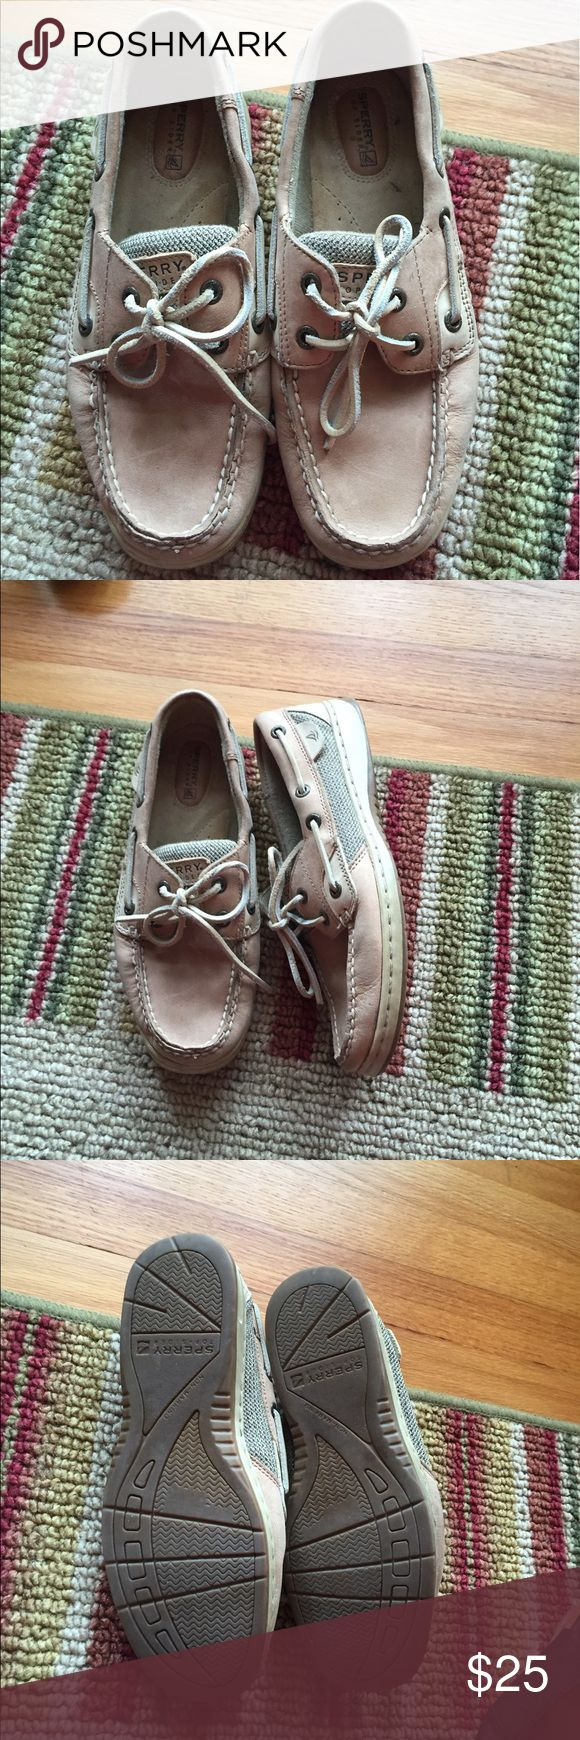 Ladies Sperry Top Sider shoes size 6.5 Ladies Sperry Top Sider shoes size 6.5.  Pre loved and LOTS of life left in them.  Sperry shoes don't get older they just get better! Sperry Top-Sider Shoes Flats & Loafers